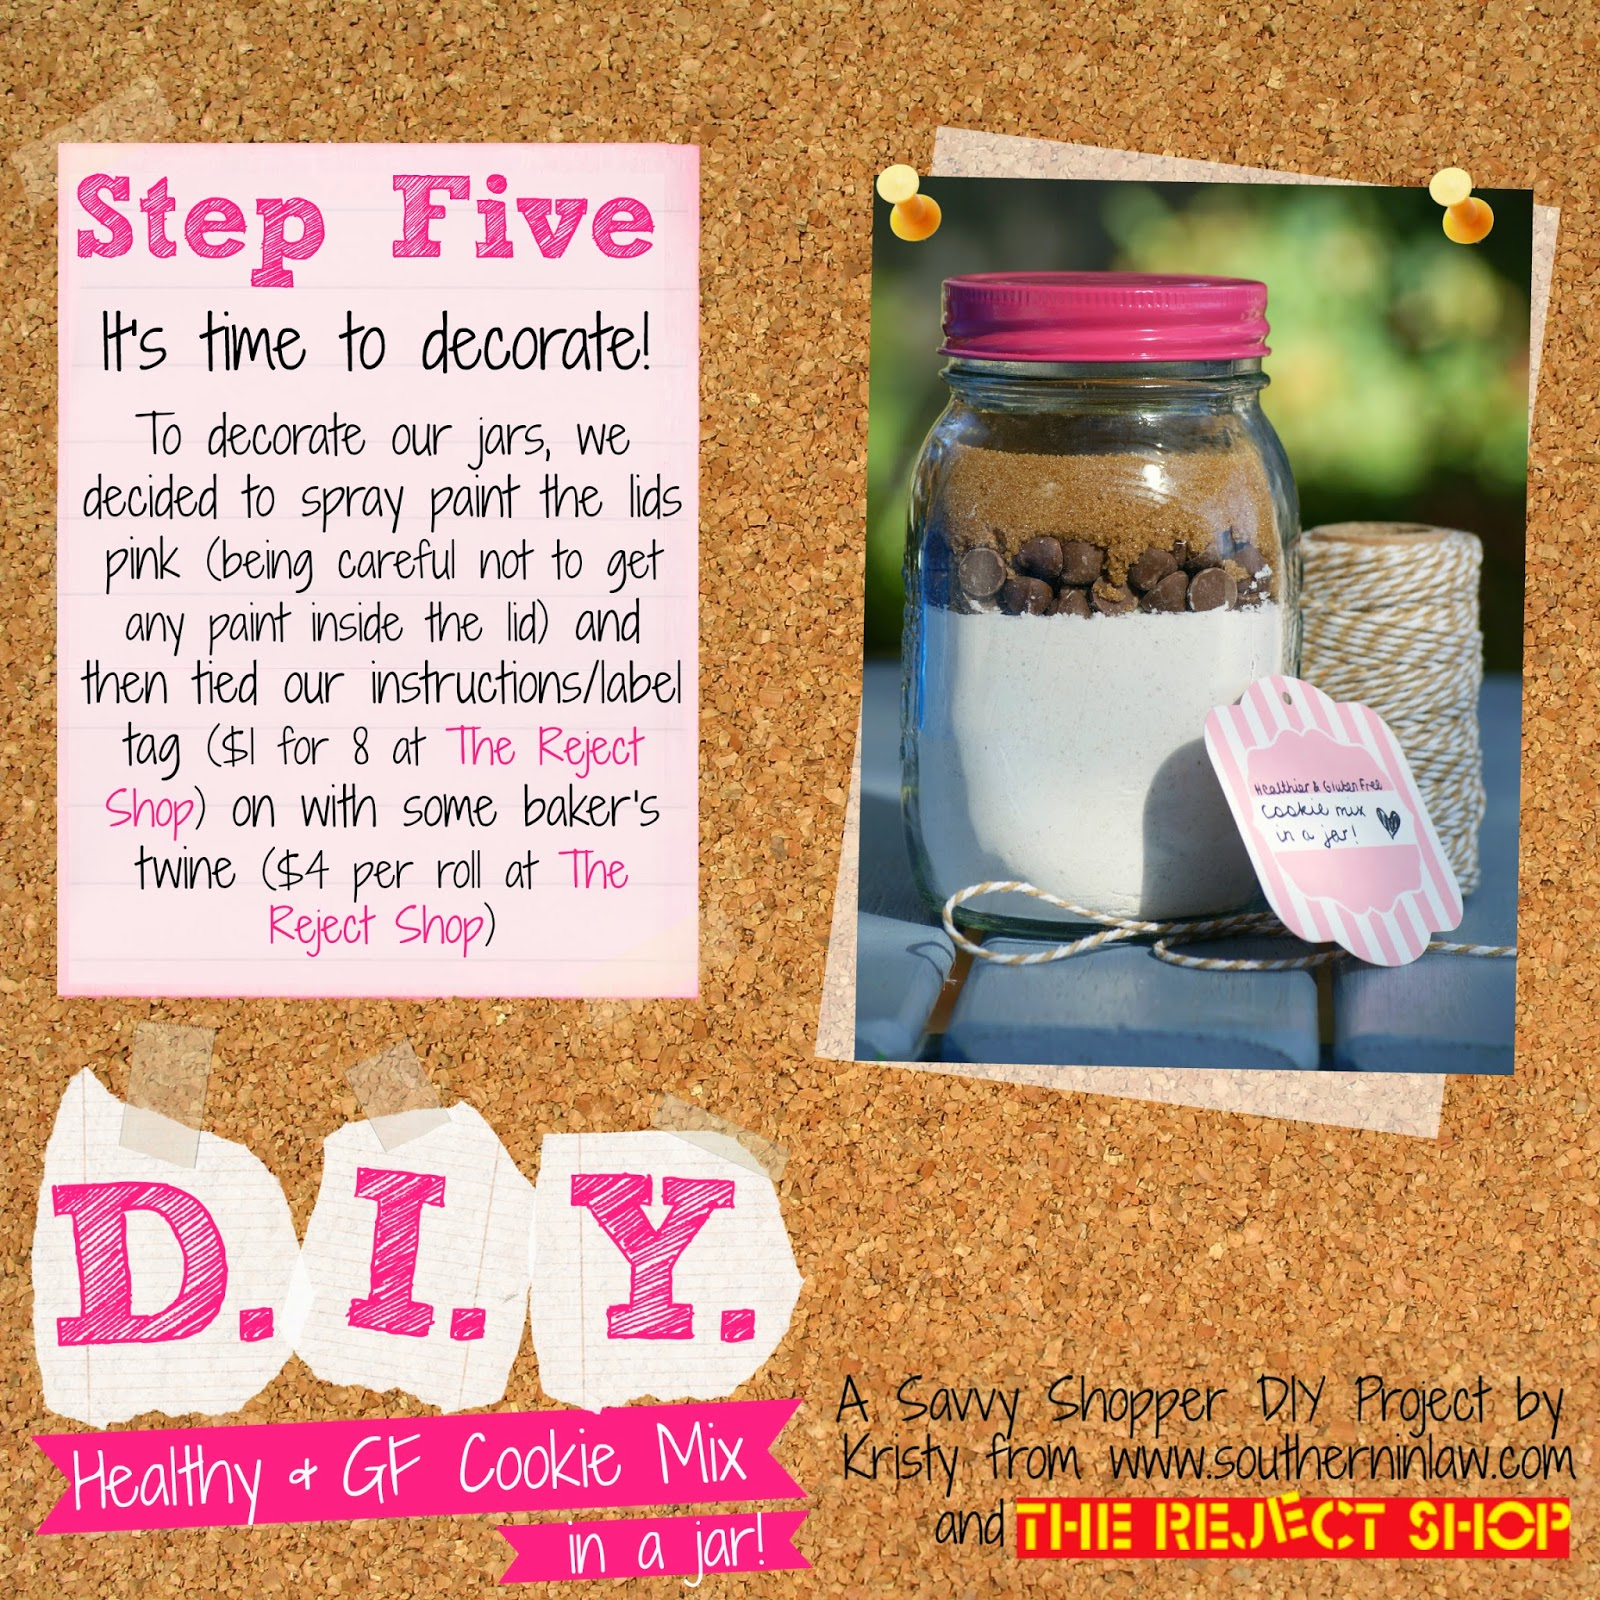 Gluten Free Cookie Mix in A Jar Recipe - Healthy Gift Ideas for Birthdays and Christmas - Gifts in a Jar on a Budget